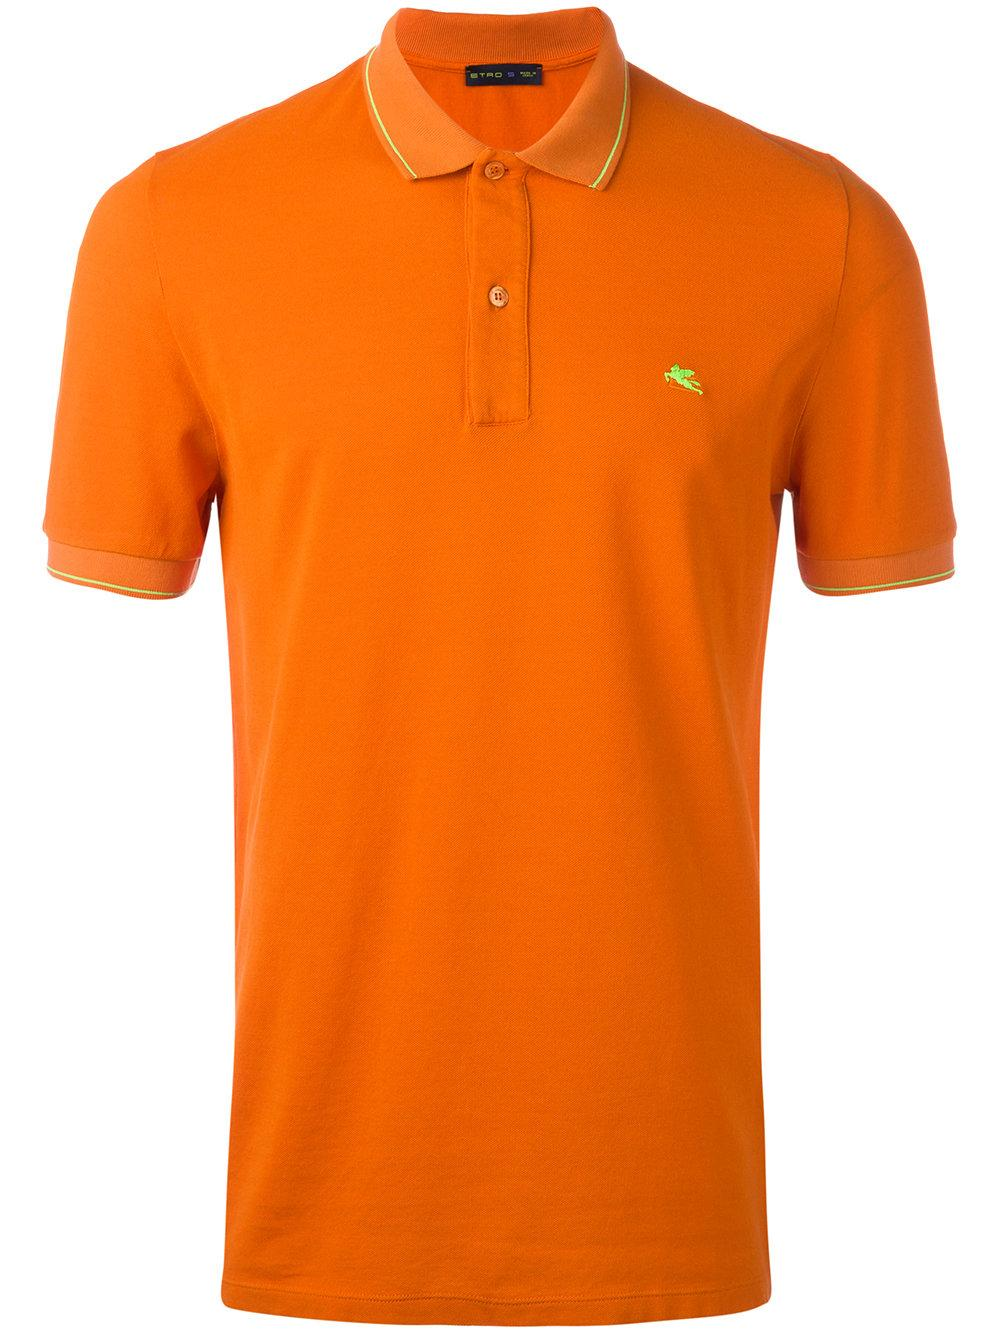 Etro classic polo shirt in orange for men lyst for Mens orange polo shirt